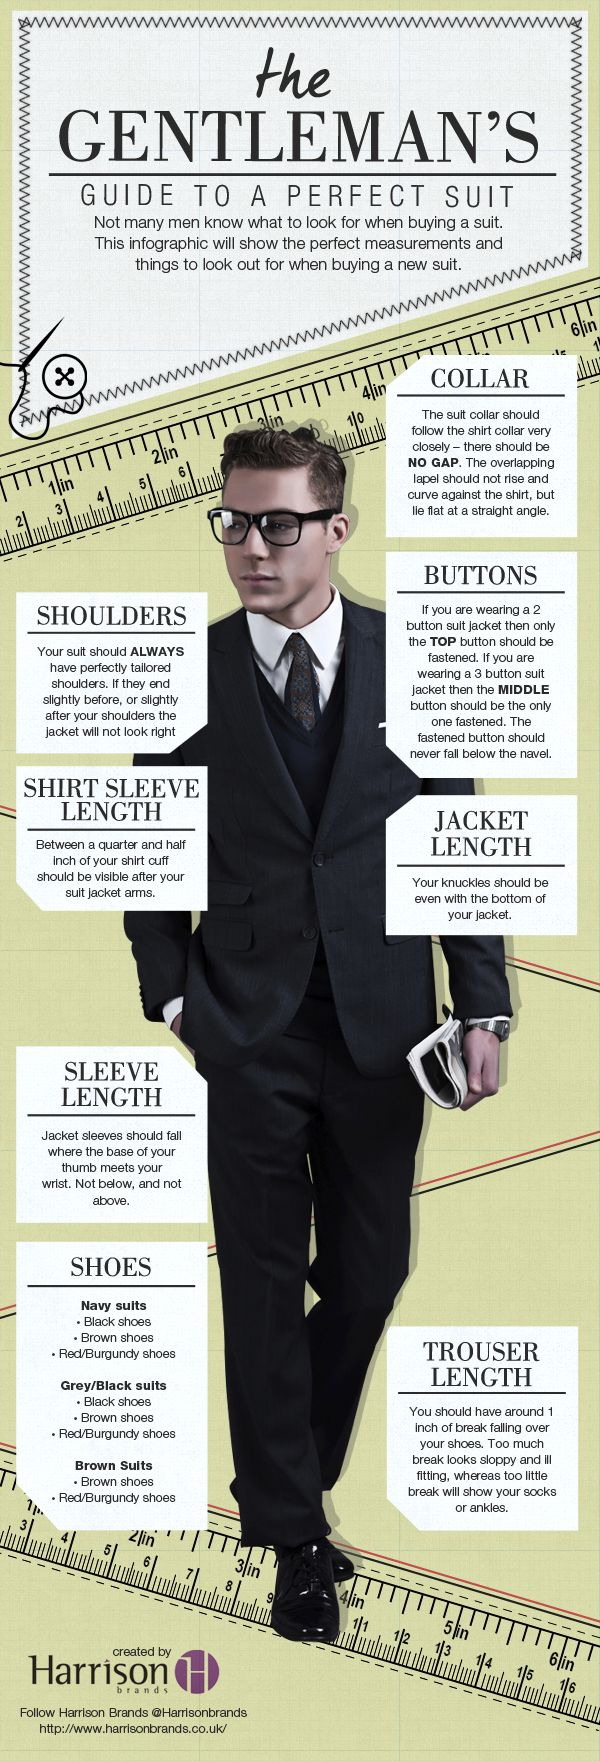 The Gentleman's Guide to a Perfect Suit